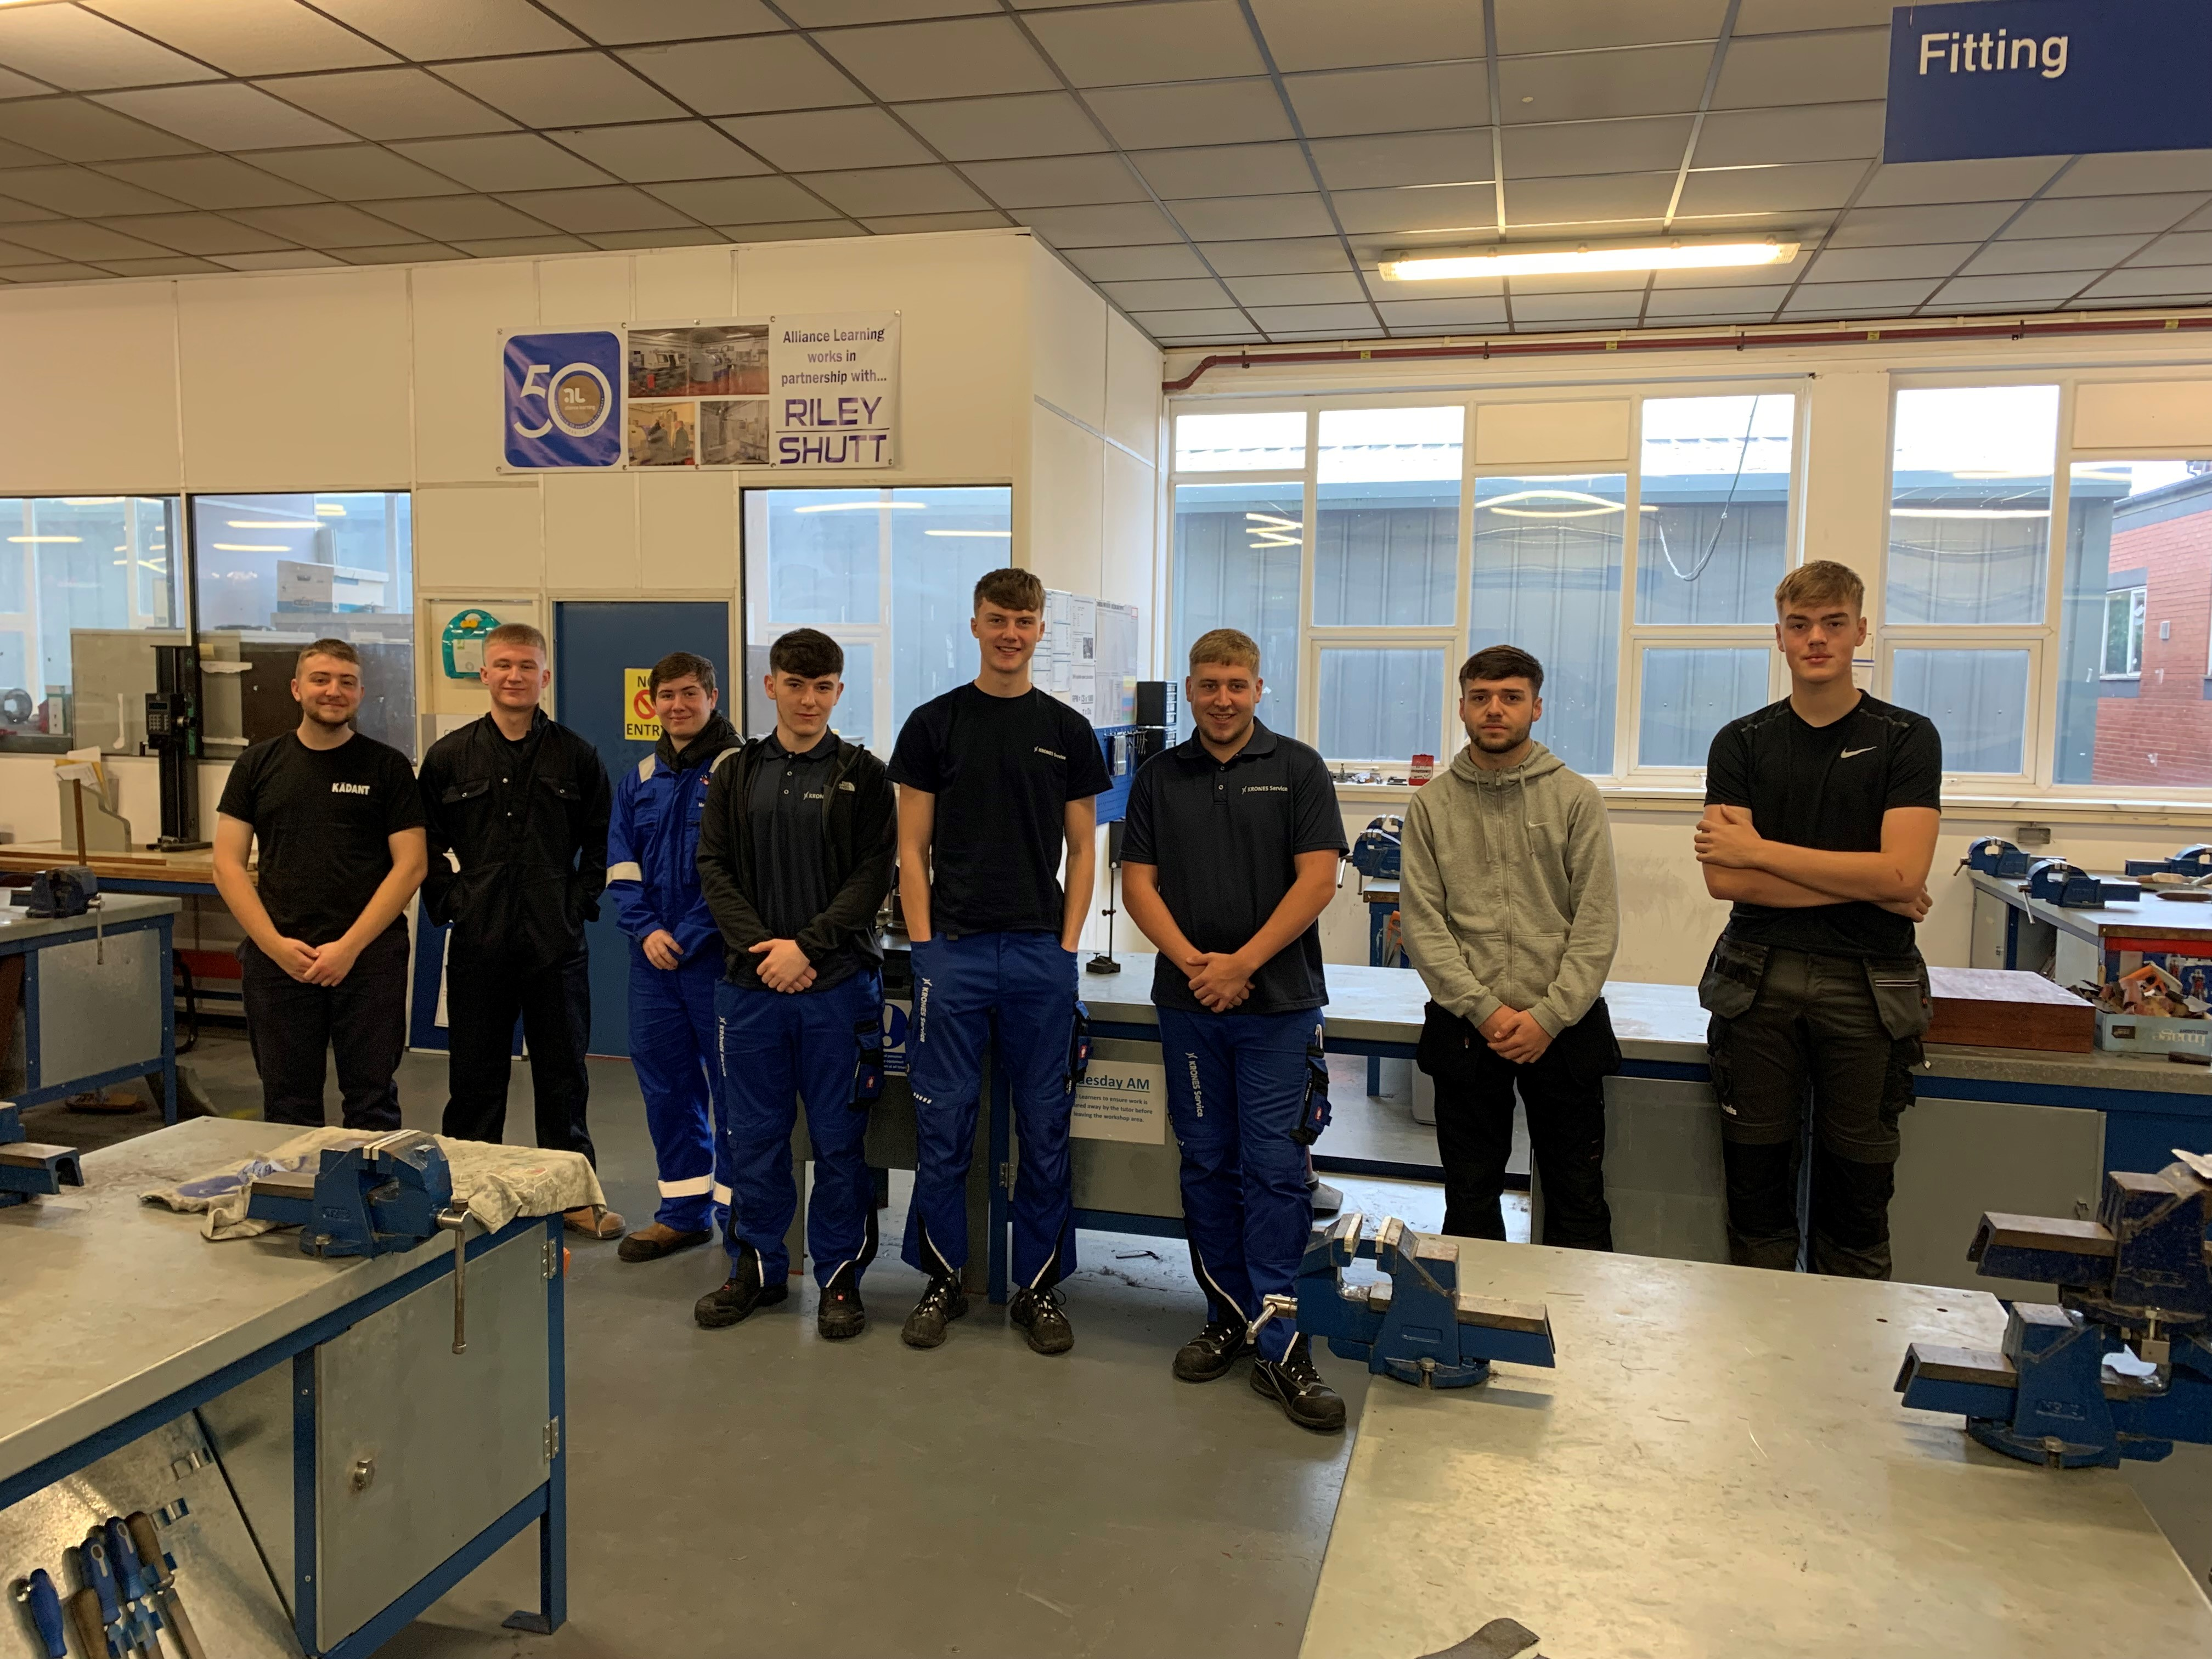 Alliance Learning welcomes over 80 new Engineering Apprentices, despite pandemic!